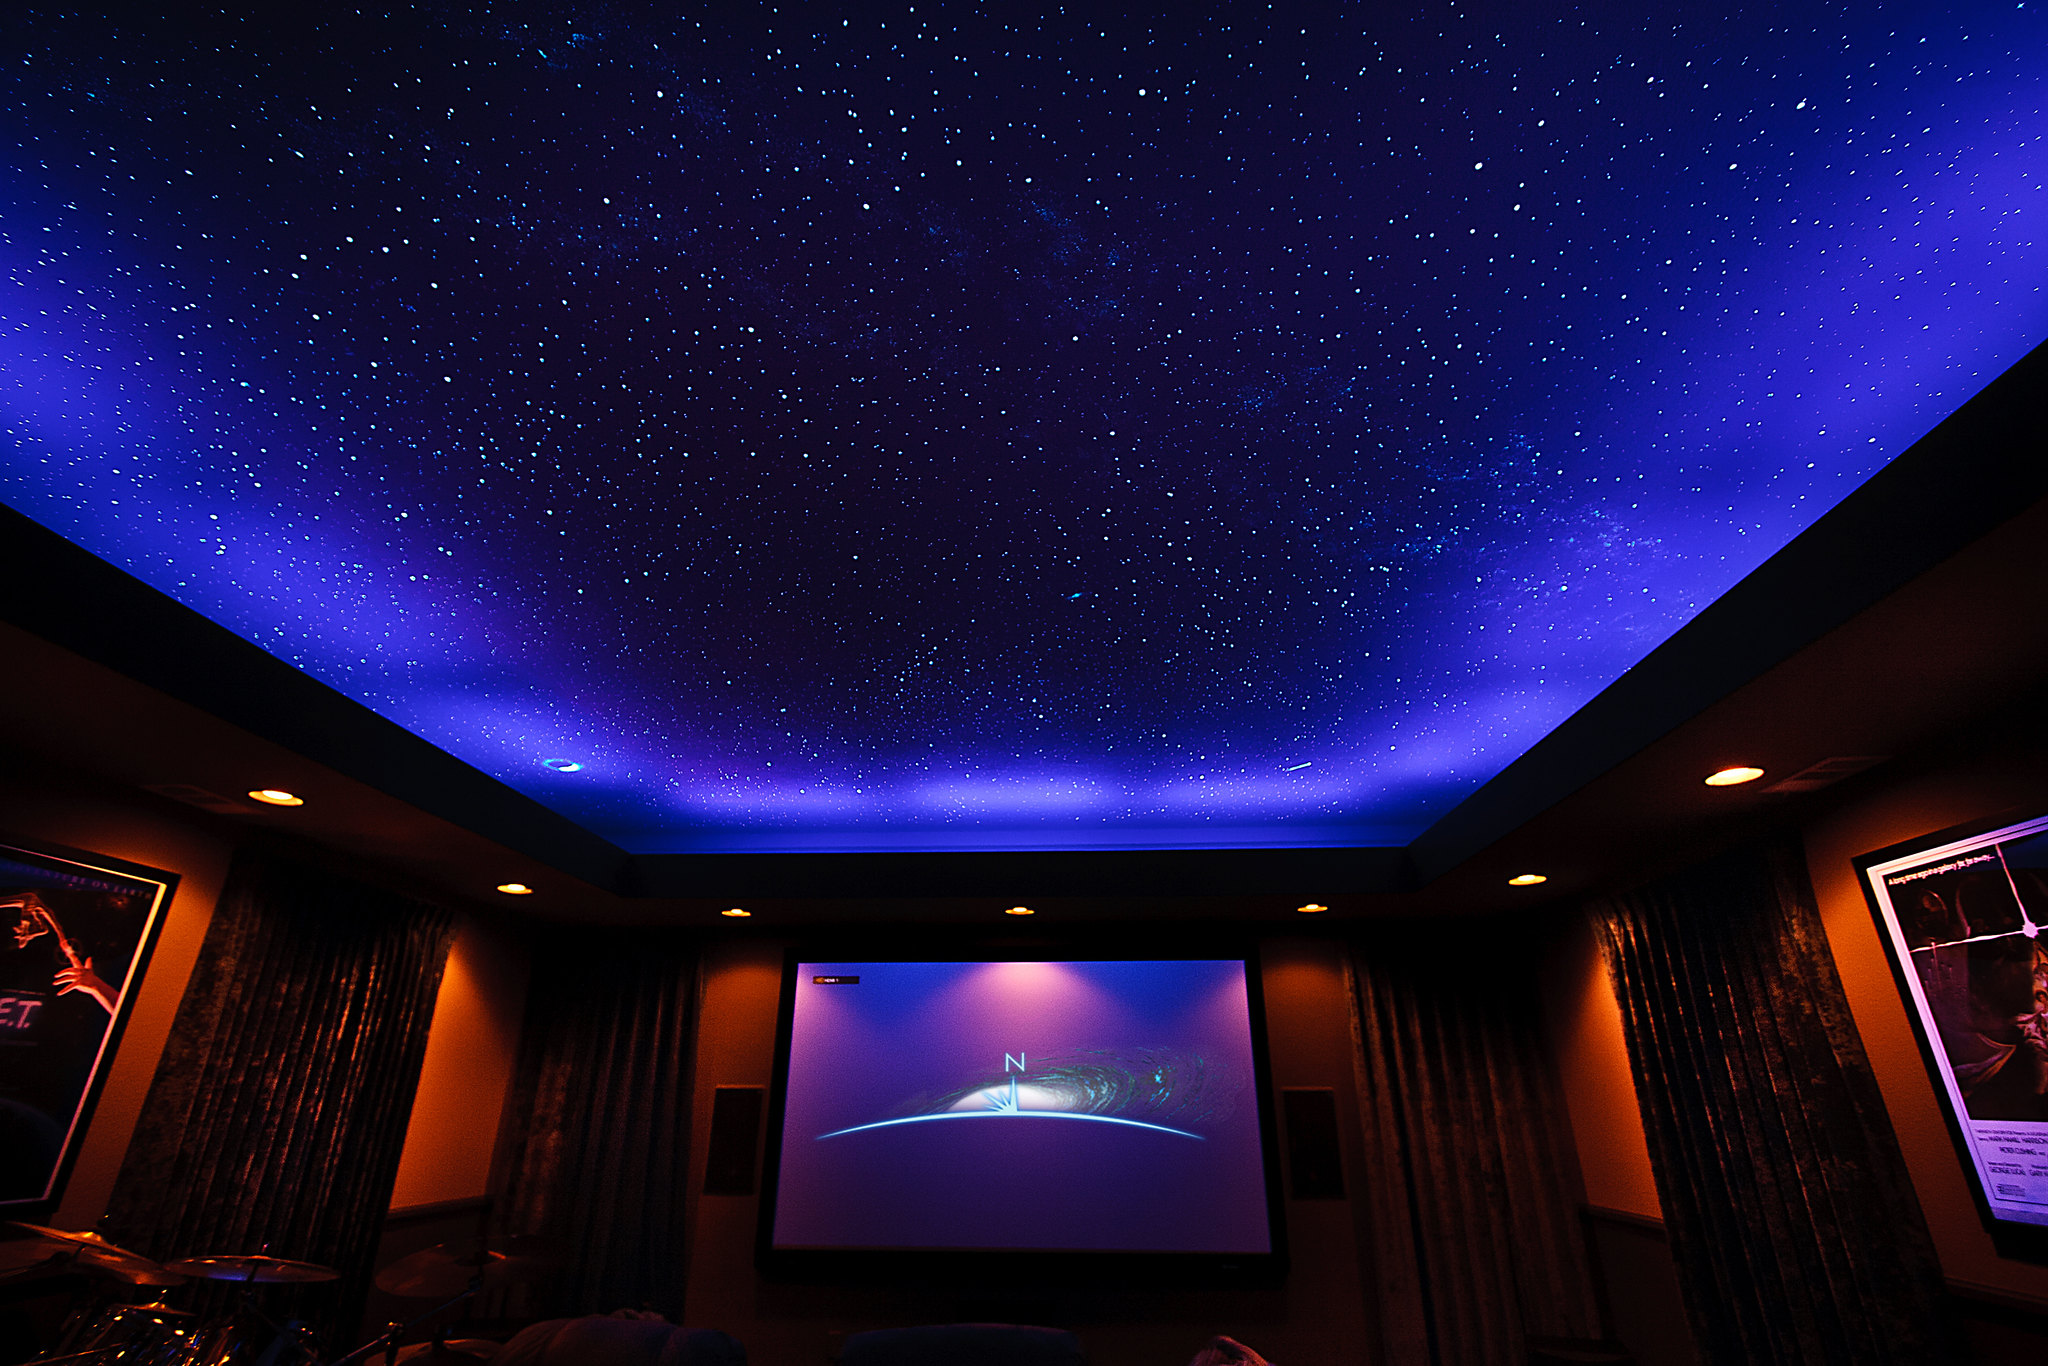 star ceilings painted or fiber optics avs forum